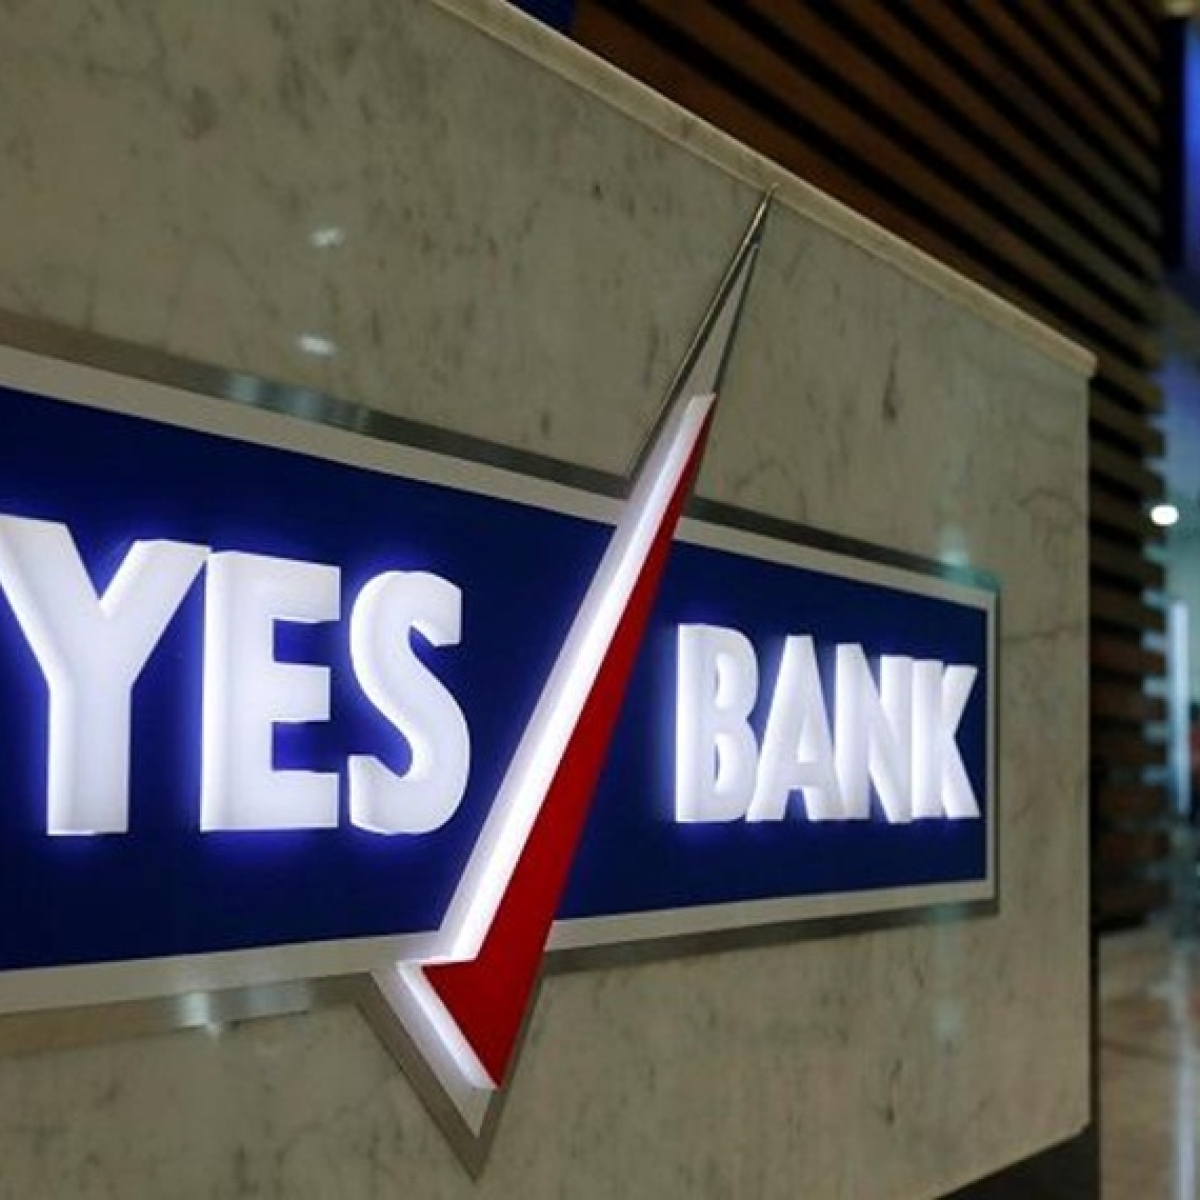 Results: Yes Bank net loss swells to Rs 3,788 crore in Q4 FY21